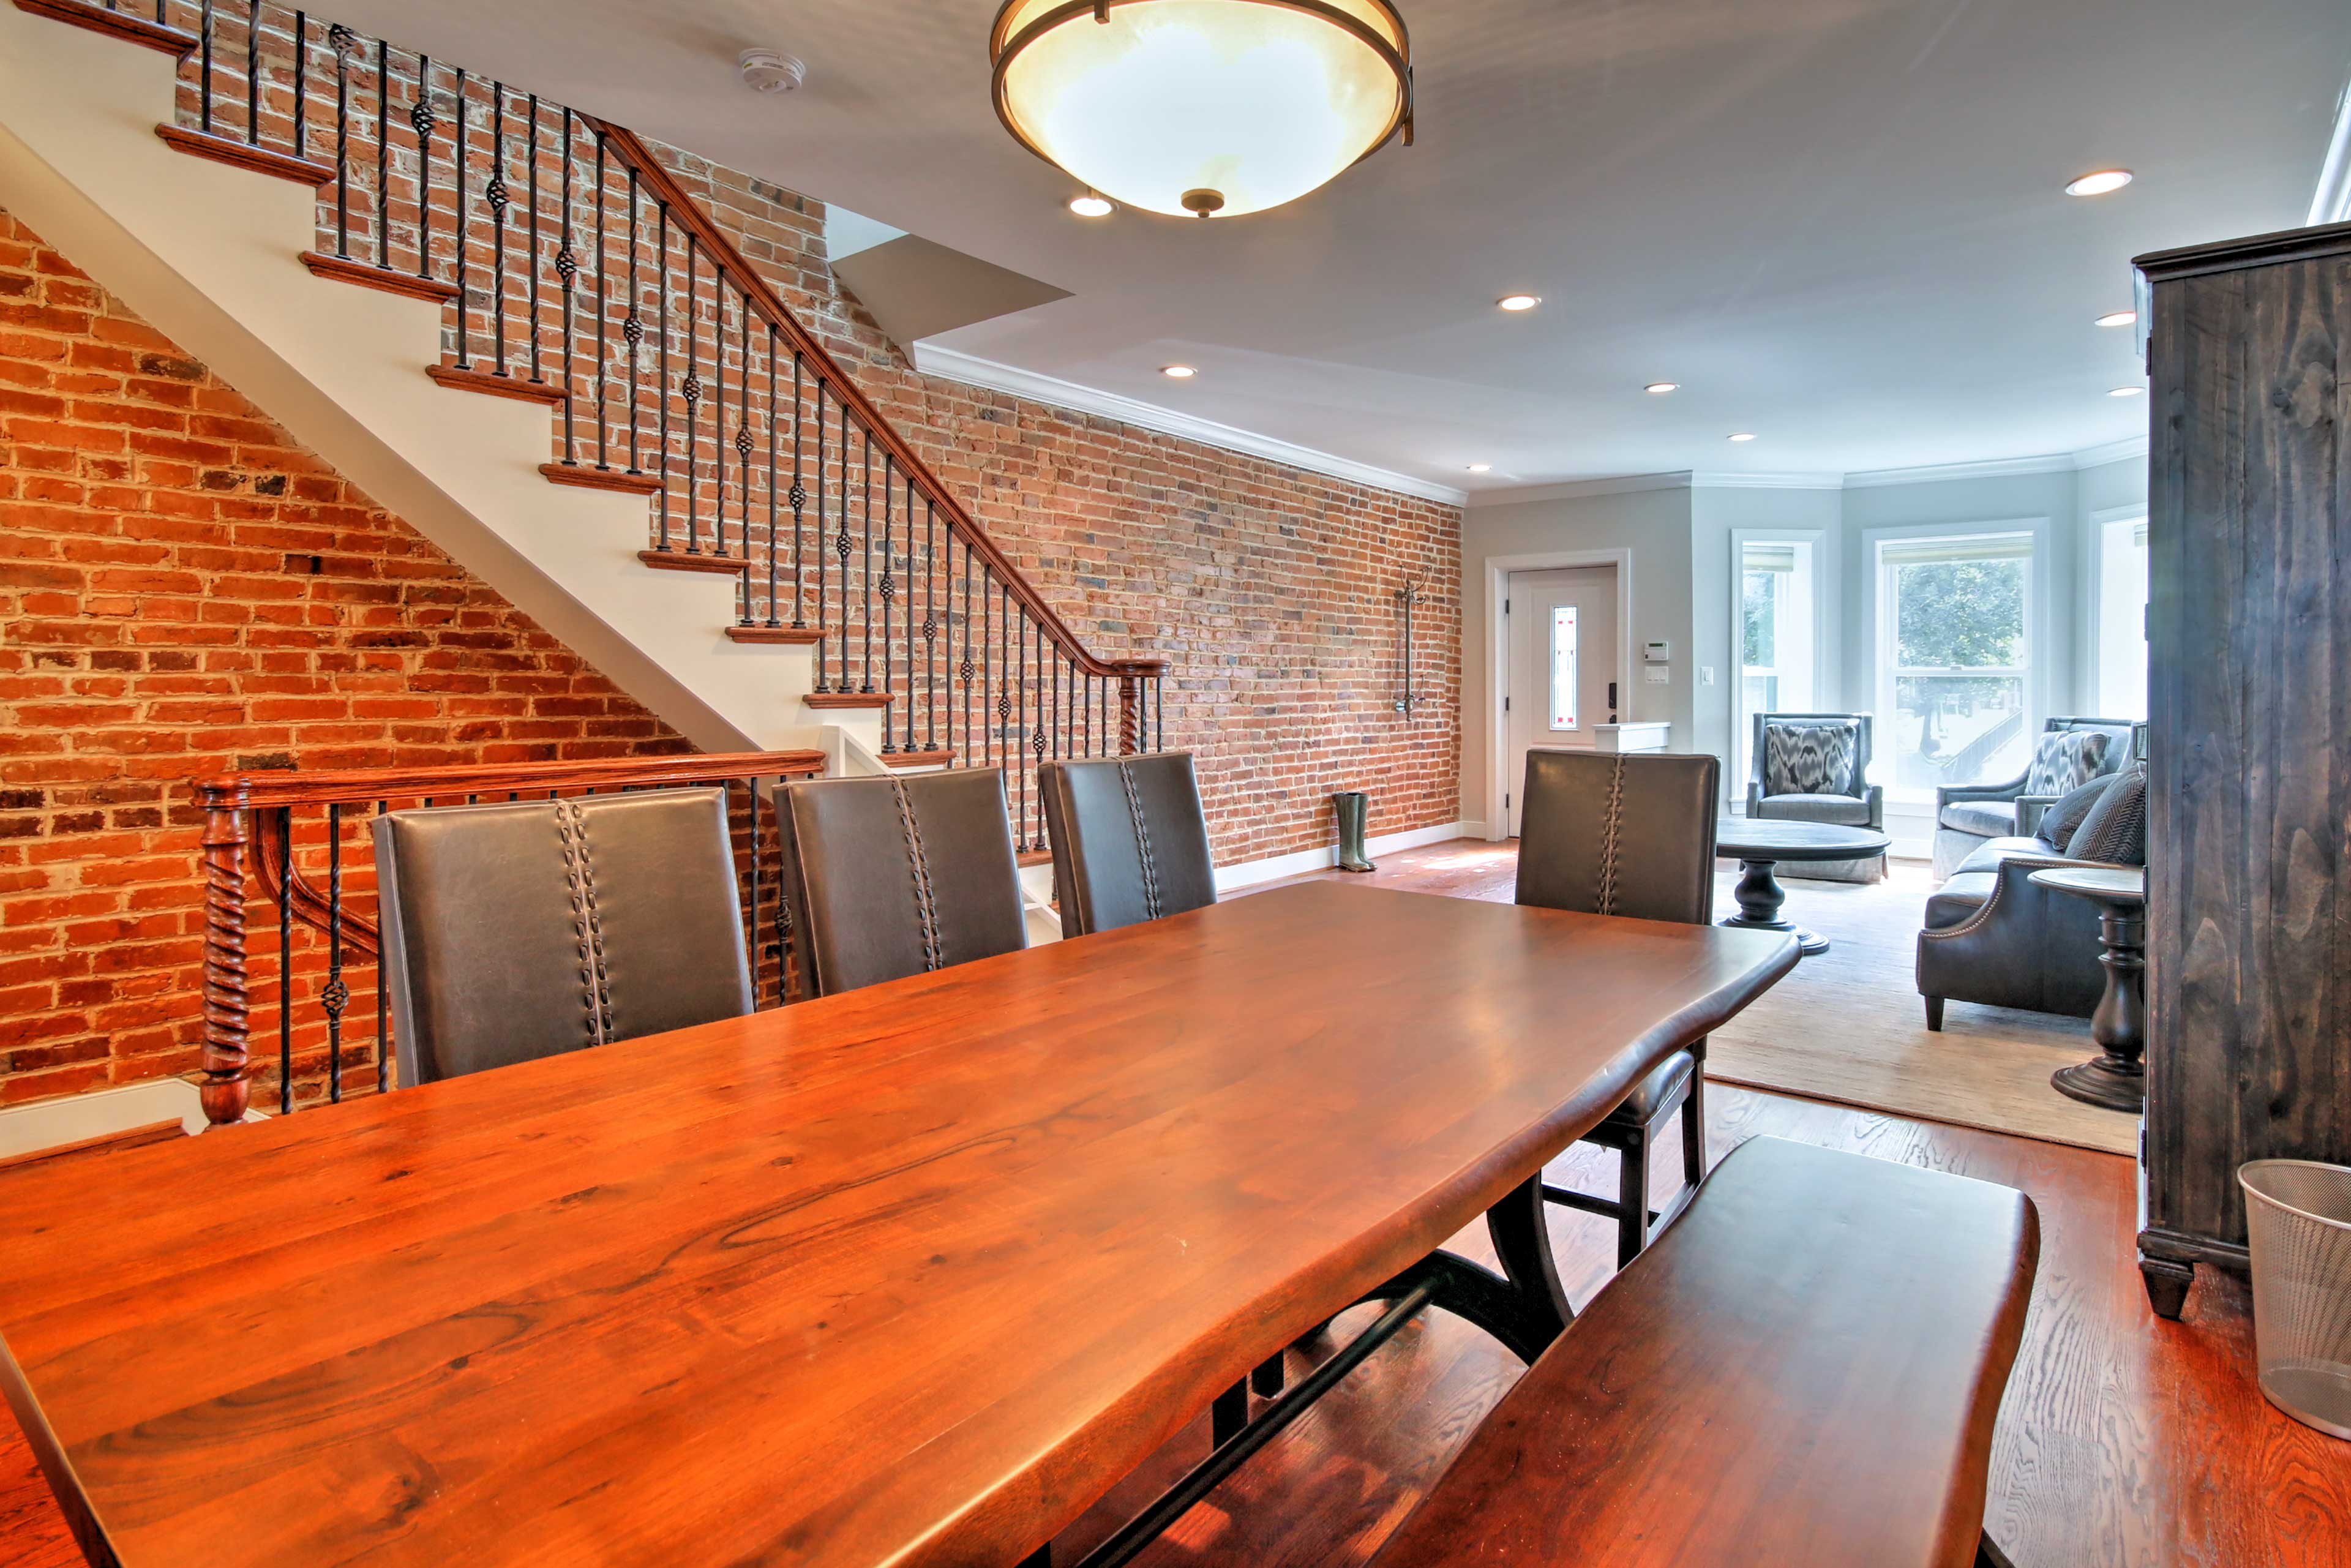 Enjoy formal meals at the large wooden dining table.